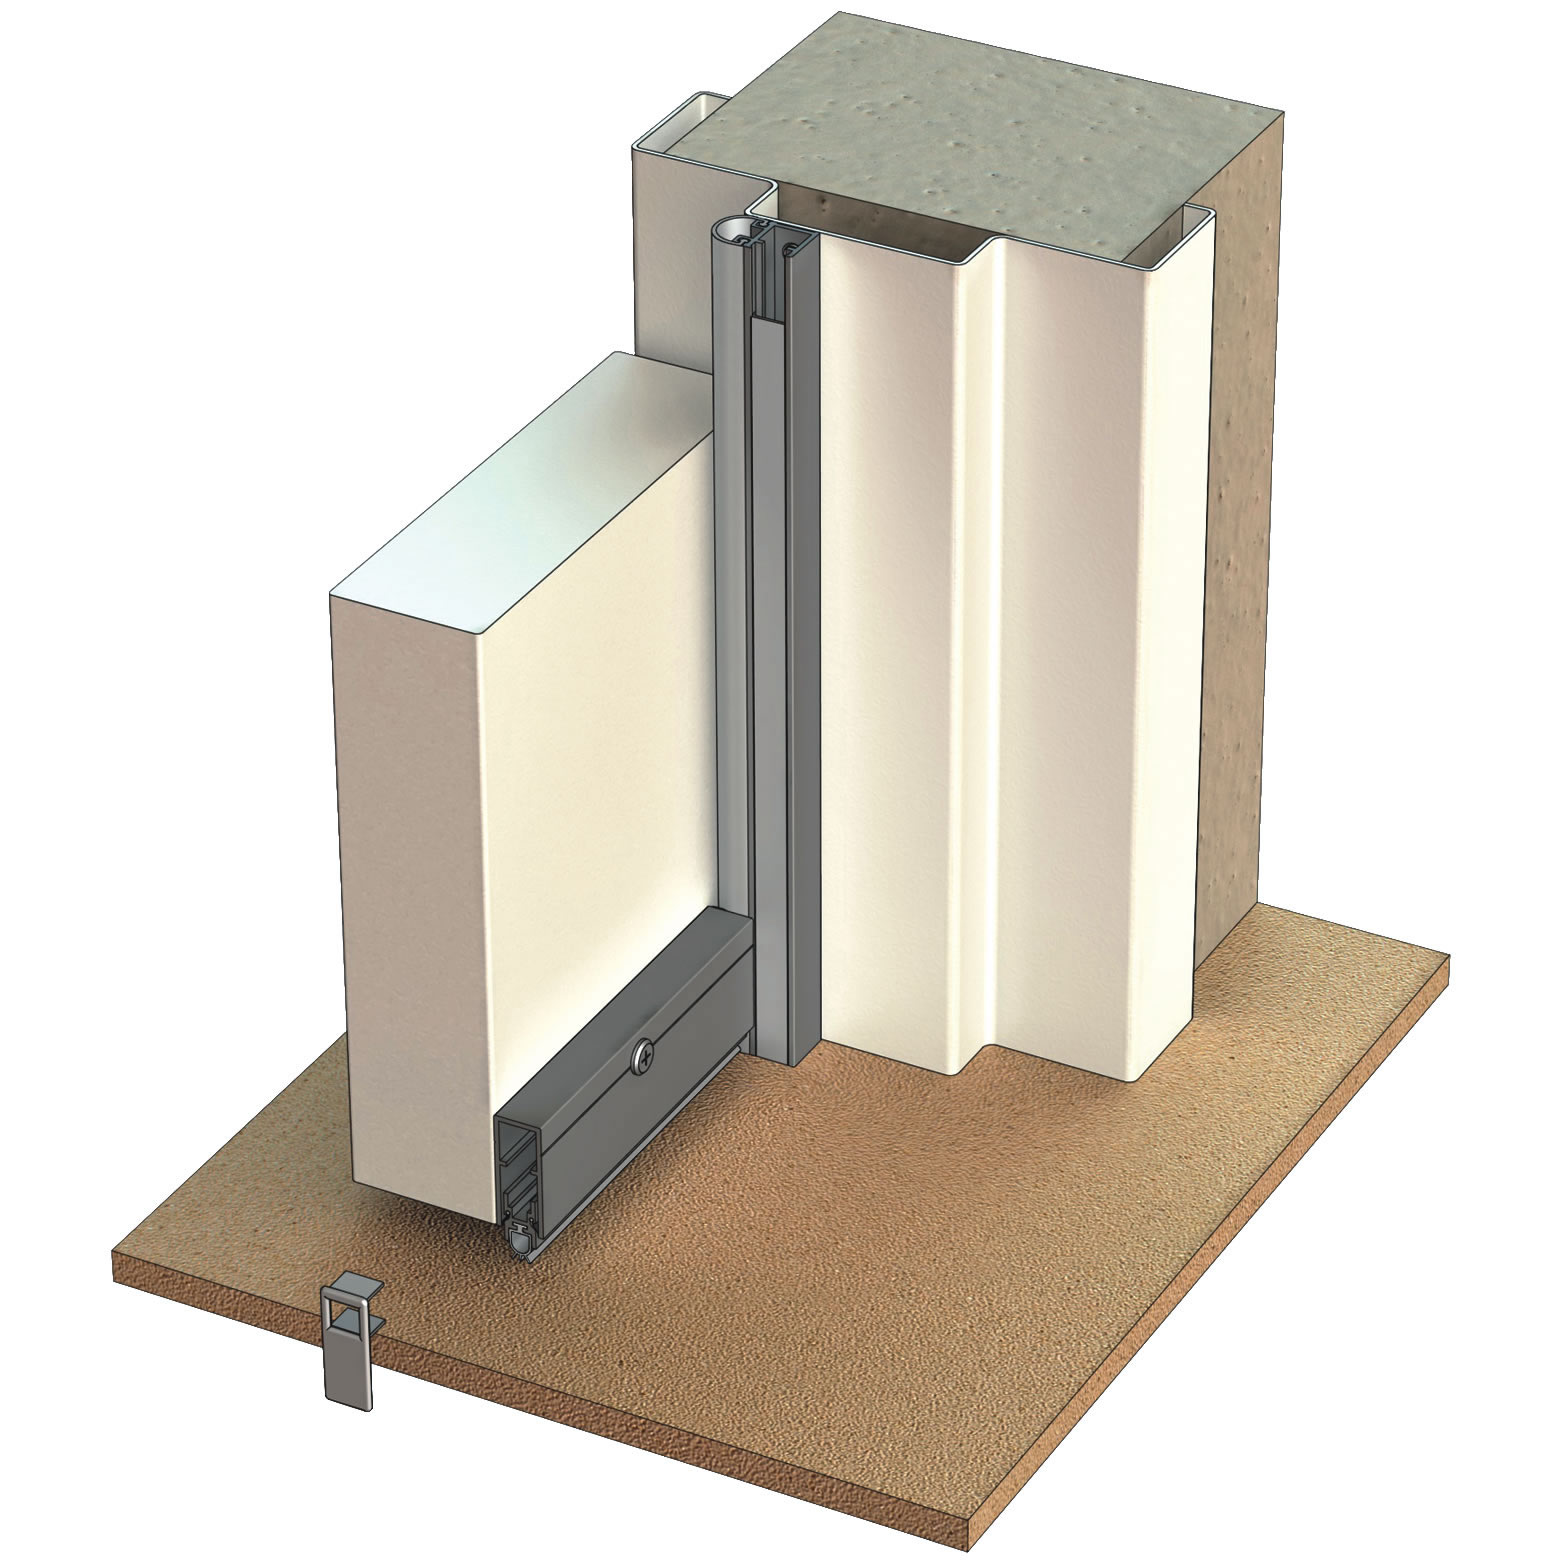 IS7085si IS8011si High Performance Proprietary Steel Acoustic Door System  sc 1 st  Kilargo & IS7085si IS8011si High Performance Proprietary Steel Acoustic Door ...